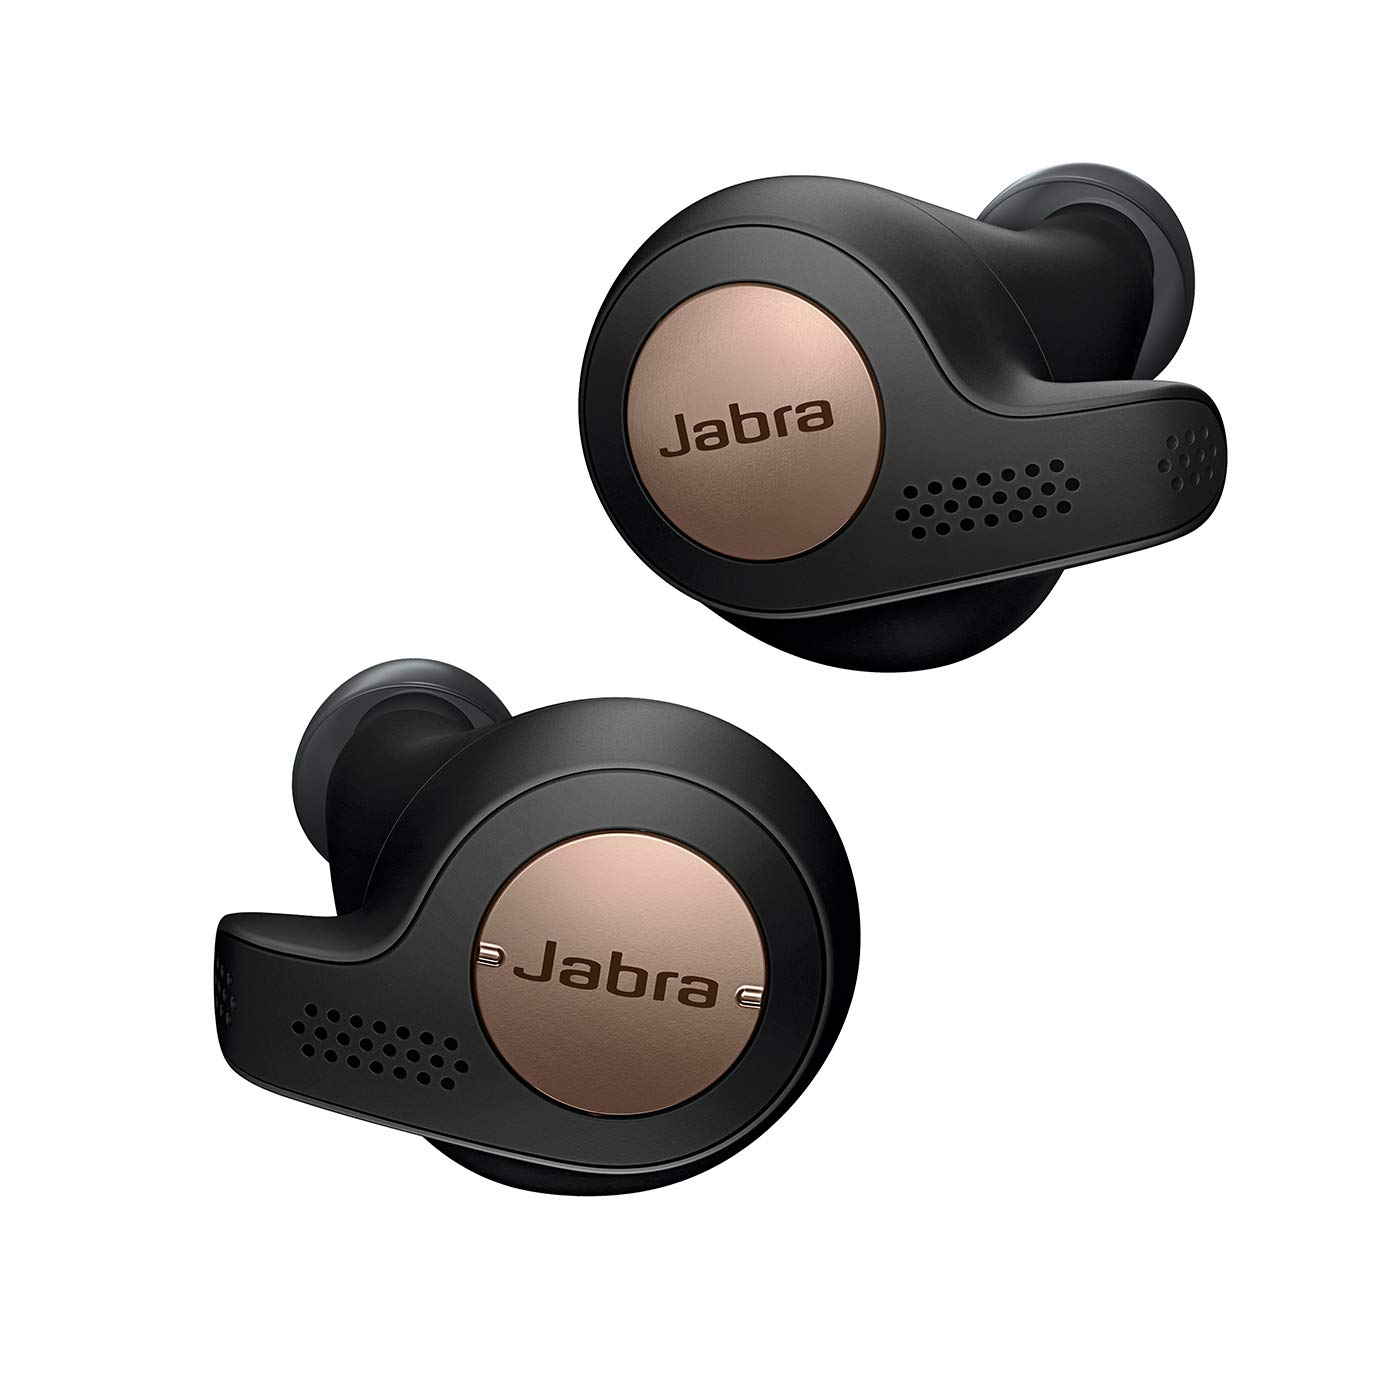 Jabra Elite Active 65t Earbuds - True Wireless Earbuds with Charging Case, Copper Black - Bluetooth Earbuds with a Secure Fit and Superior Sound, Long Battery Life and More by Jabra